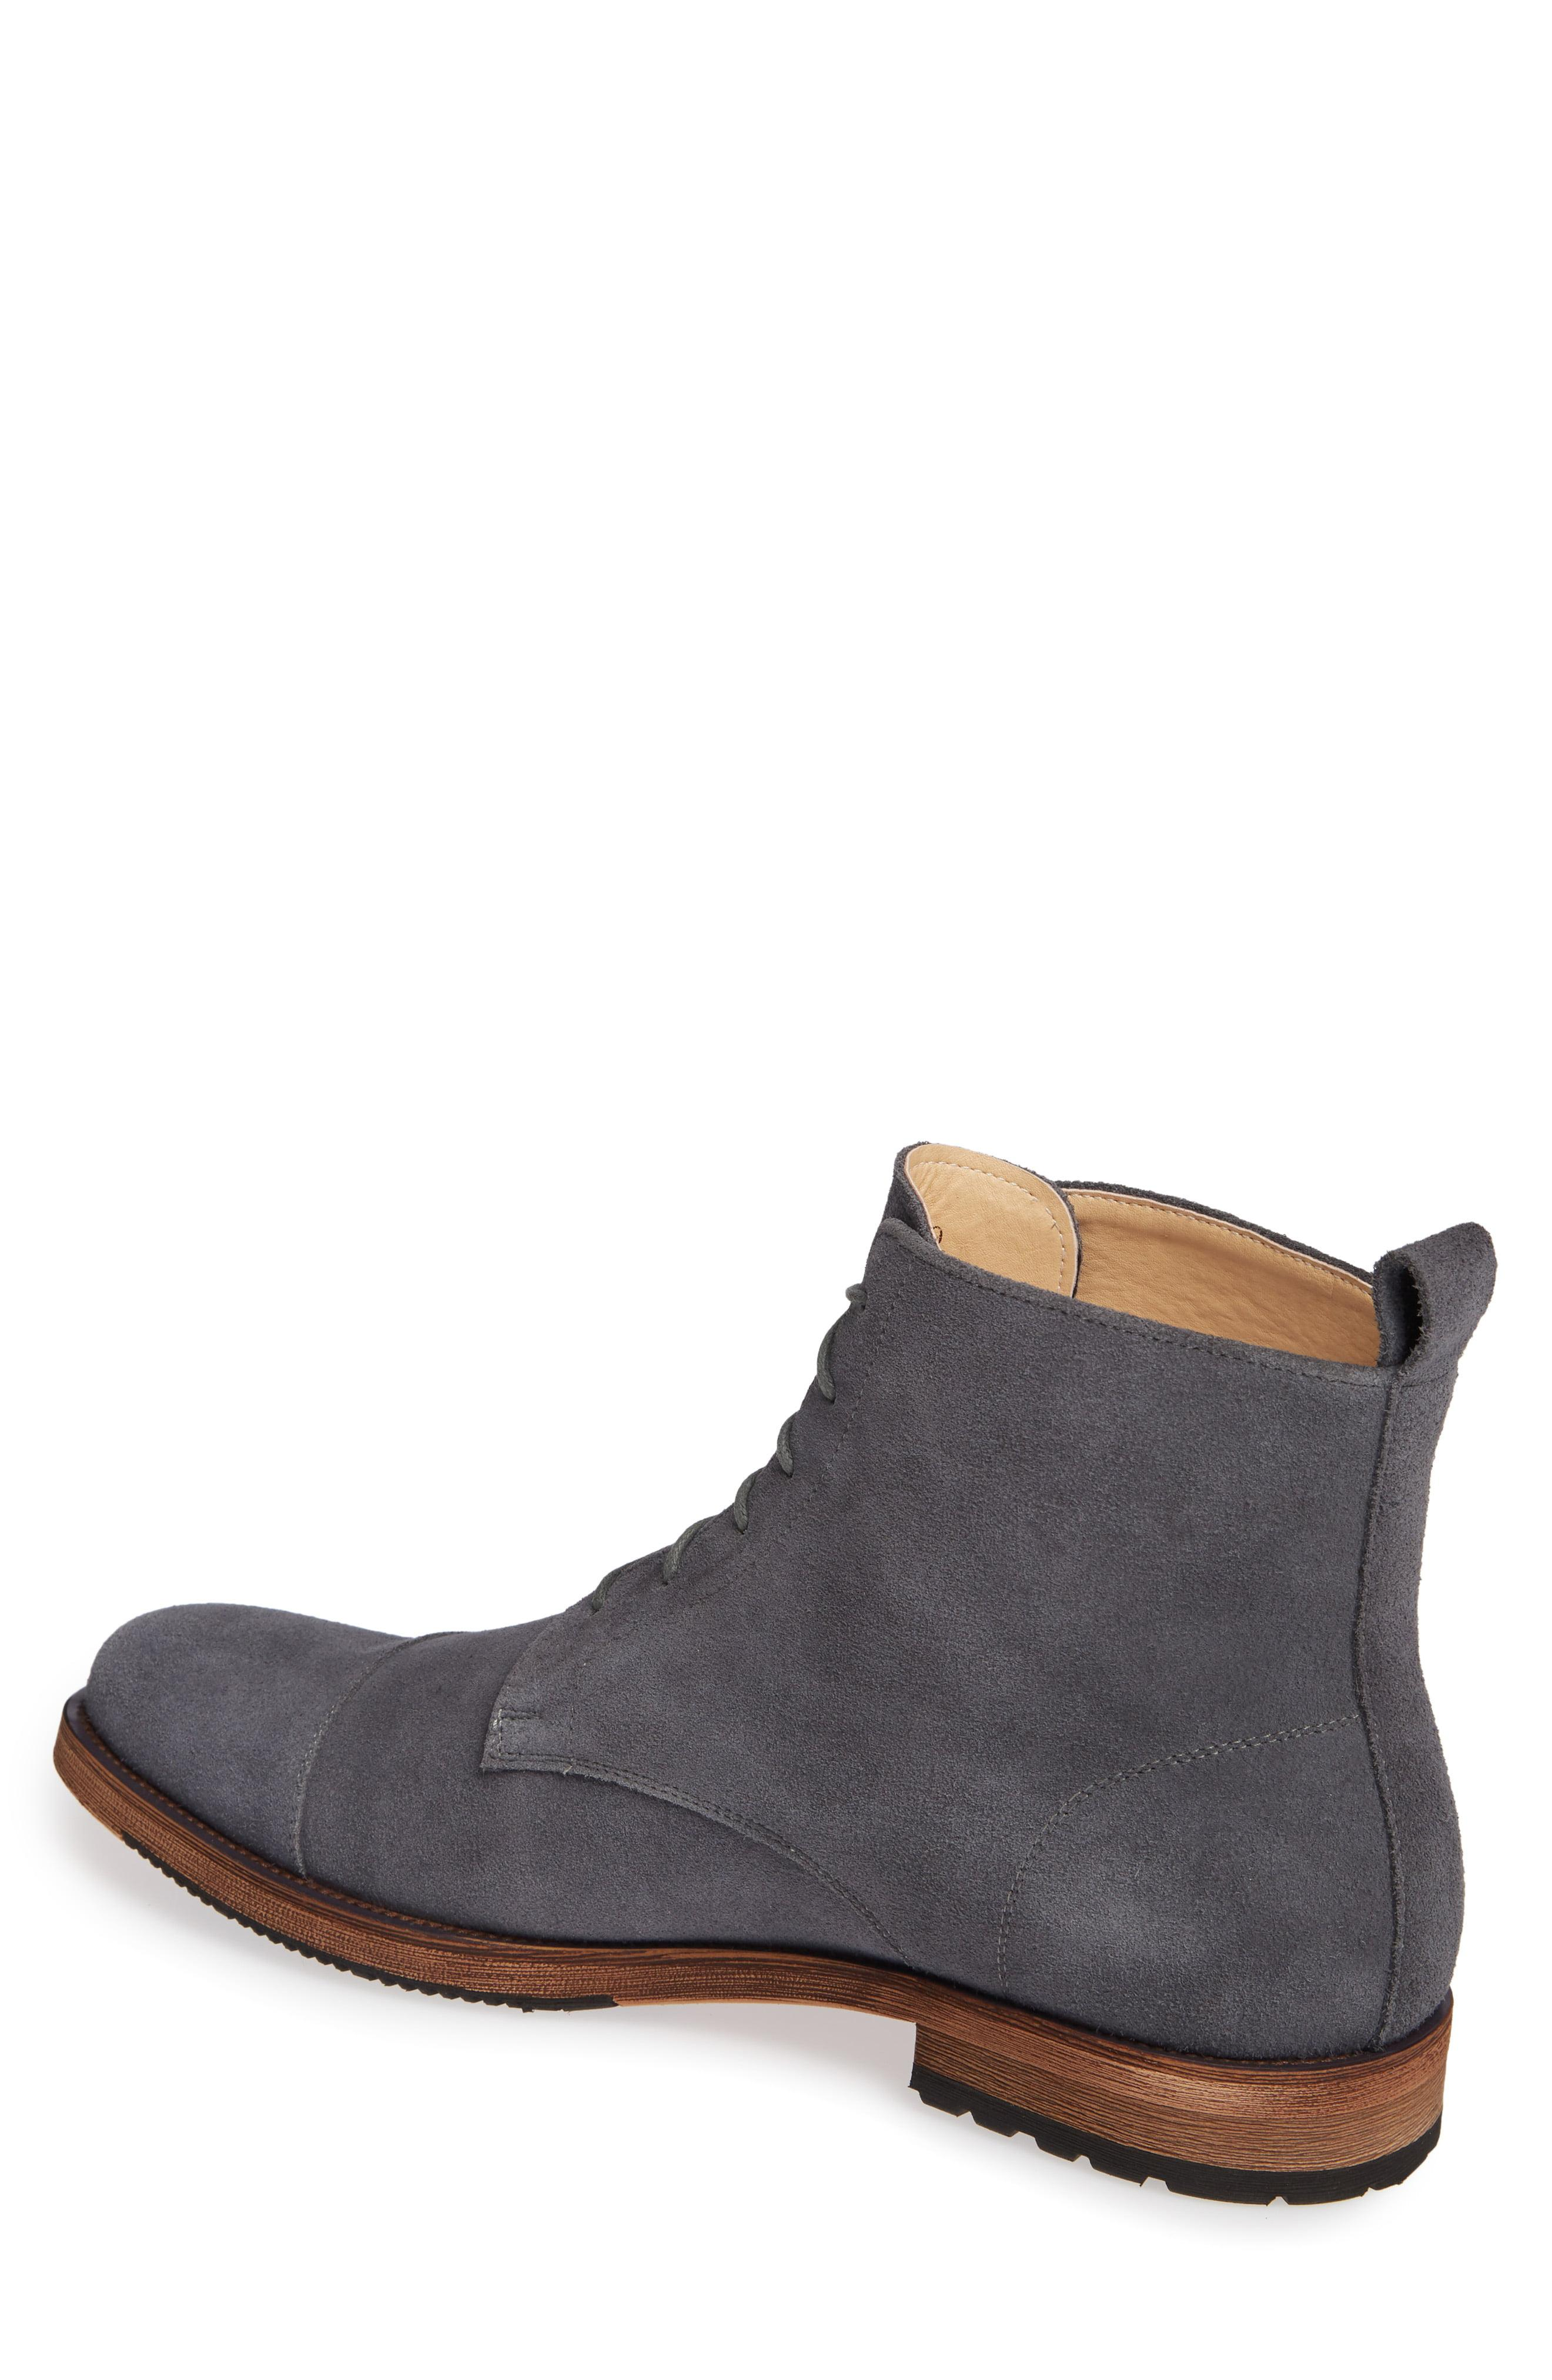 6fc038f6642dc English Laundry Swansea Cap Toe Boot in Gray for Men - Lyst